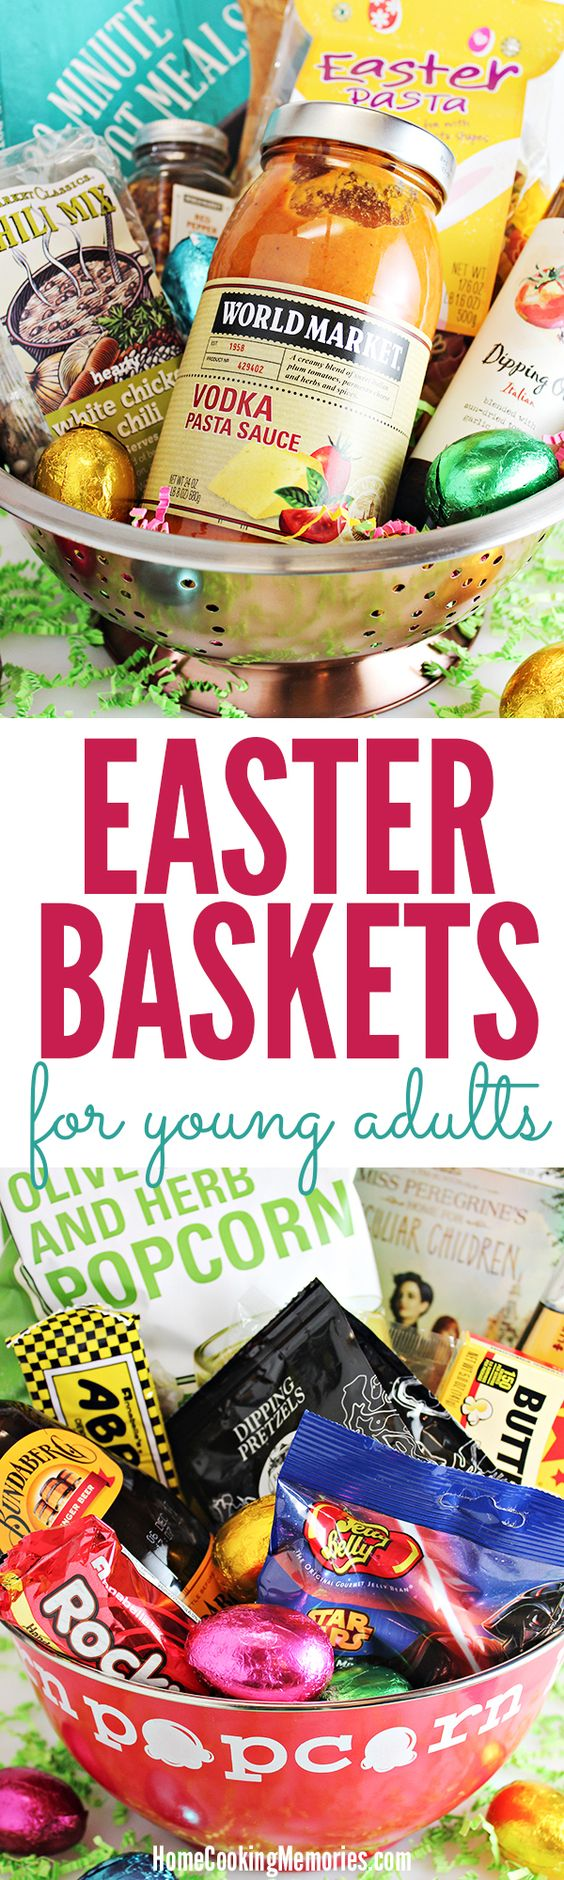 Tips inspiration for creating diy easter basket ideas for young tips inspiration for creating diy easter basket ideas for young adults or older teens includes how to make an easy dinner night easter basket negle Image collections